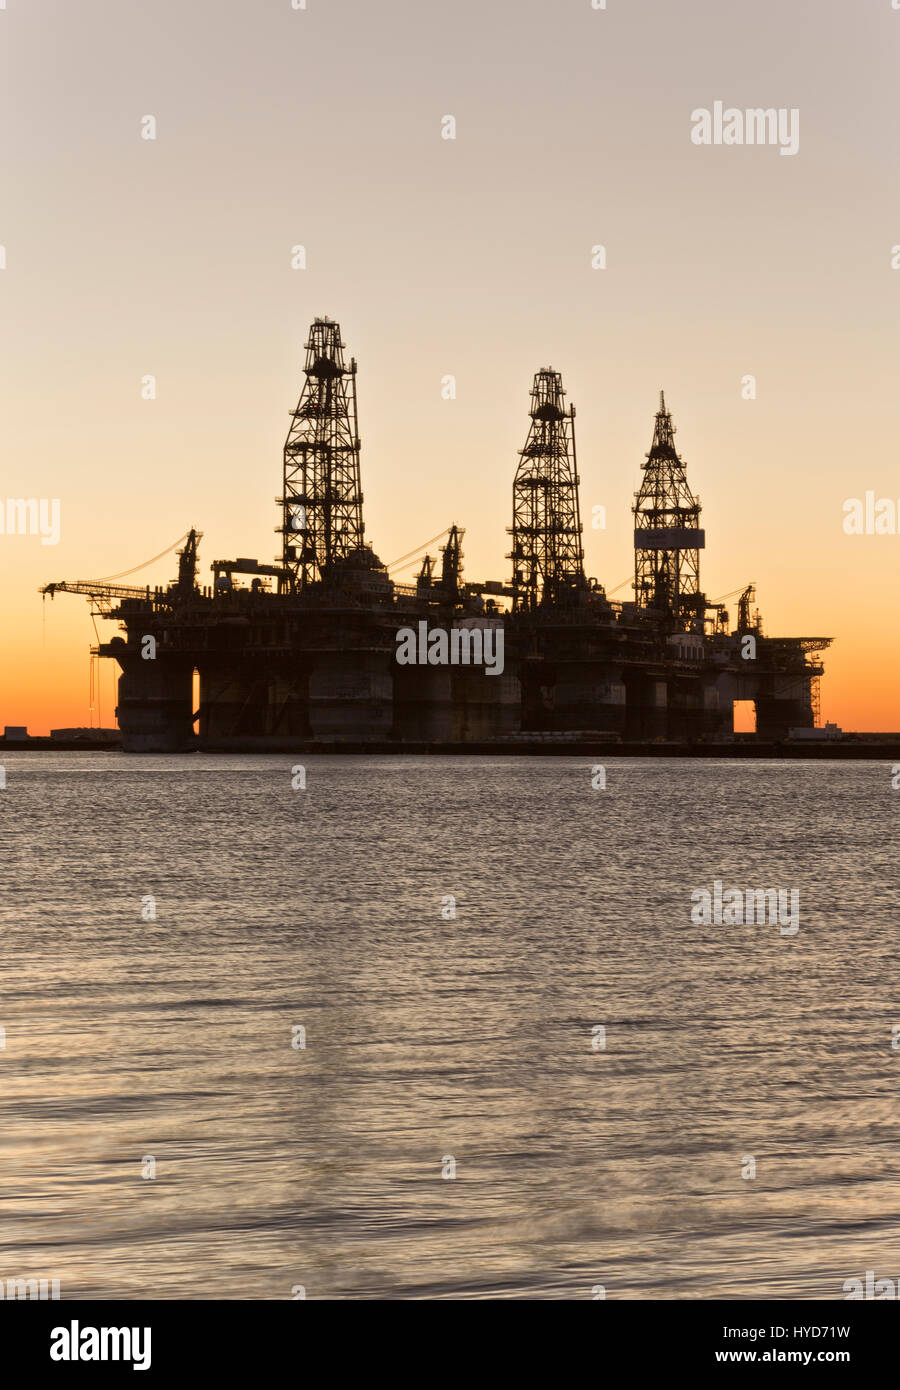 Deepwater drill rigs temporarily in storage, sunset,  Harbor Island,  Canyon Port, Port Aransas. Stock Photo